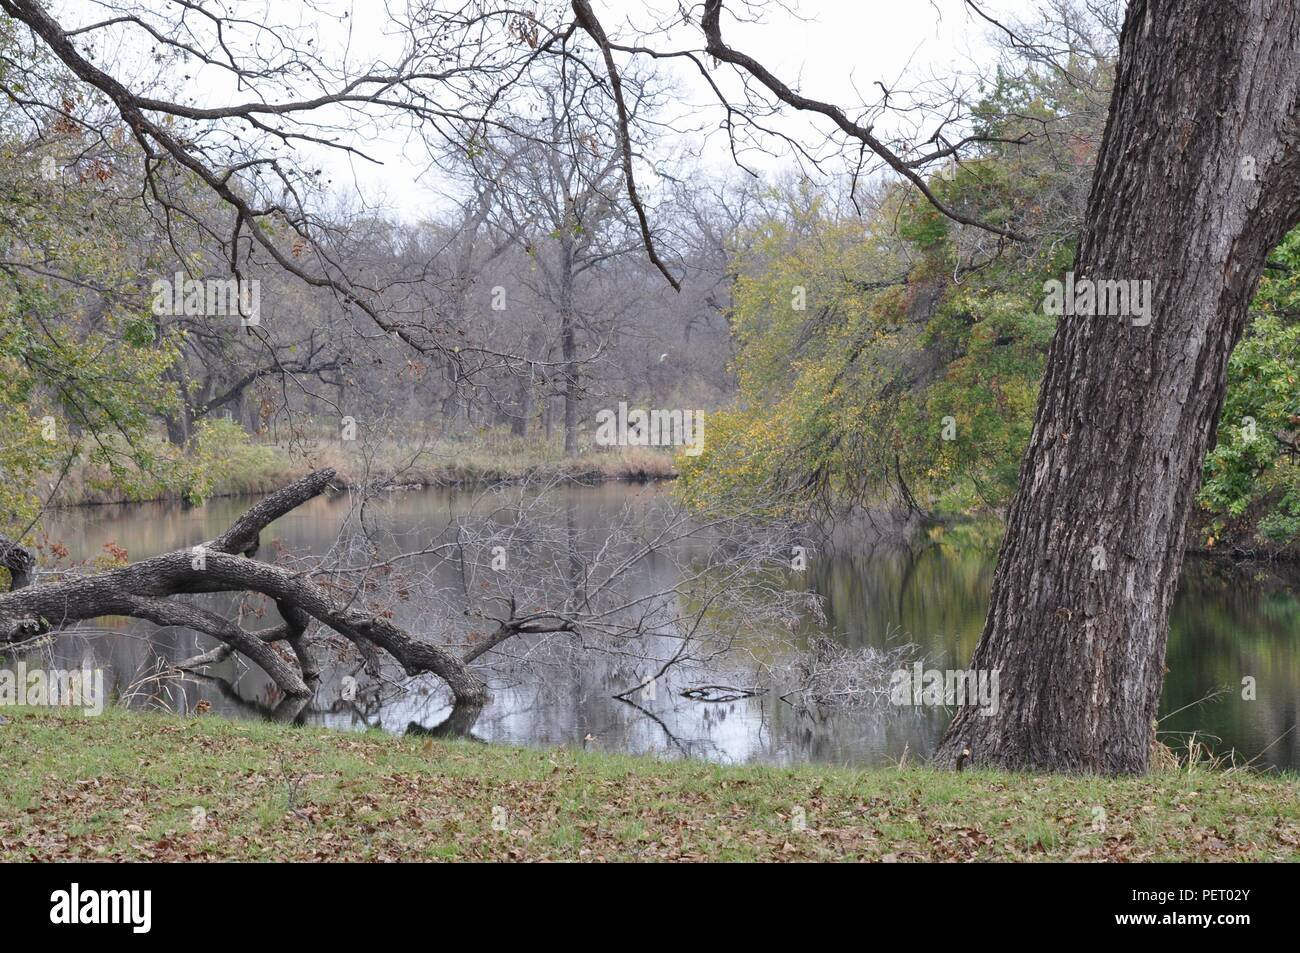 Enjoying the beauty - South Llano River State Park, Junction Texas - Stock Image